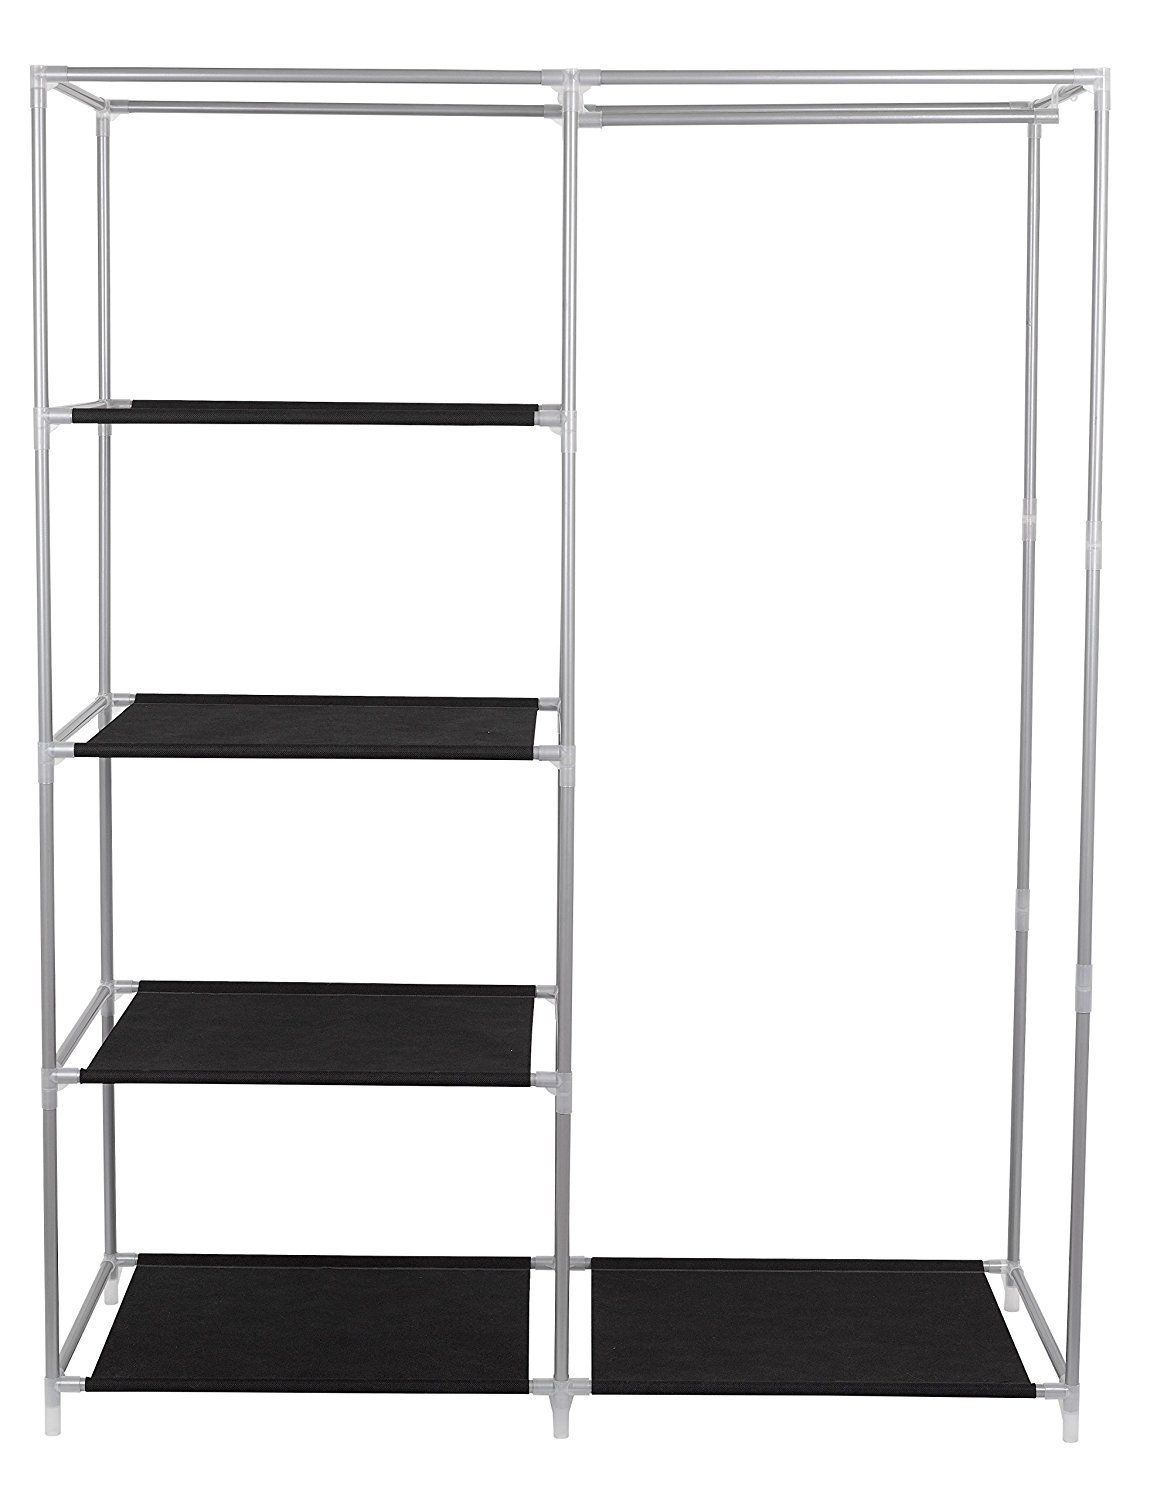 FloridaBrands Portable Closet Wardrobe - 62'' Clothes Closet Storage Organizer and Non-Woven Fabric Standing Wardrobe with Hanging Rack and 4 Shelves for Keeping Clothing Safe, Dust-Proof Cover by by FloridaBrands (Image #4)